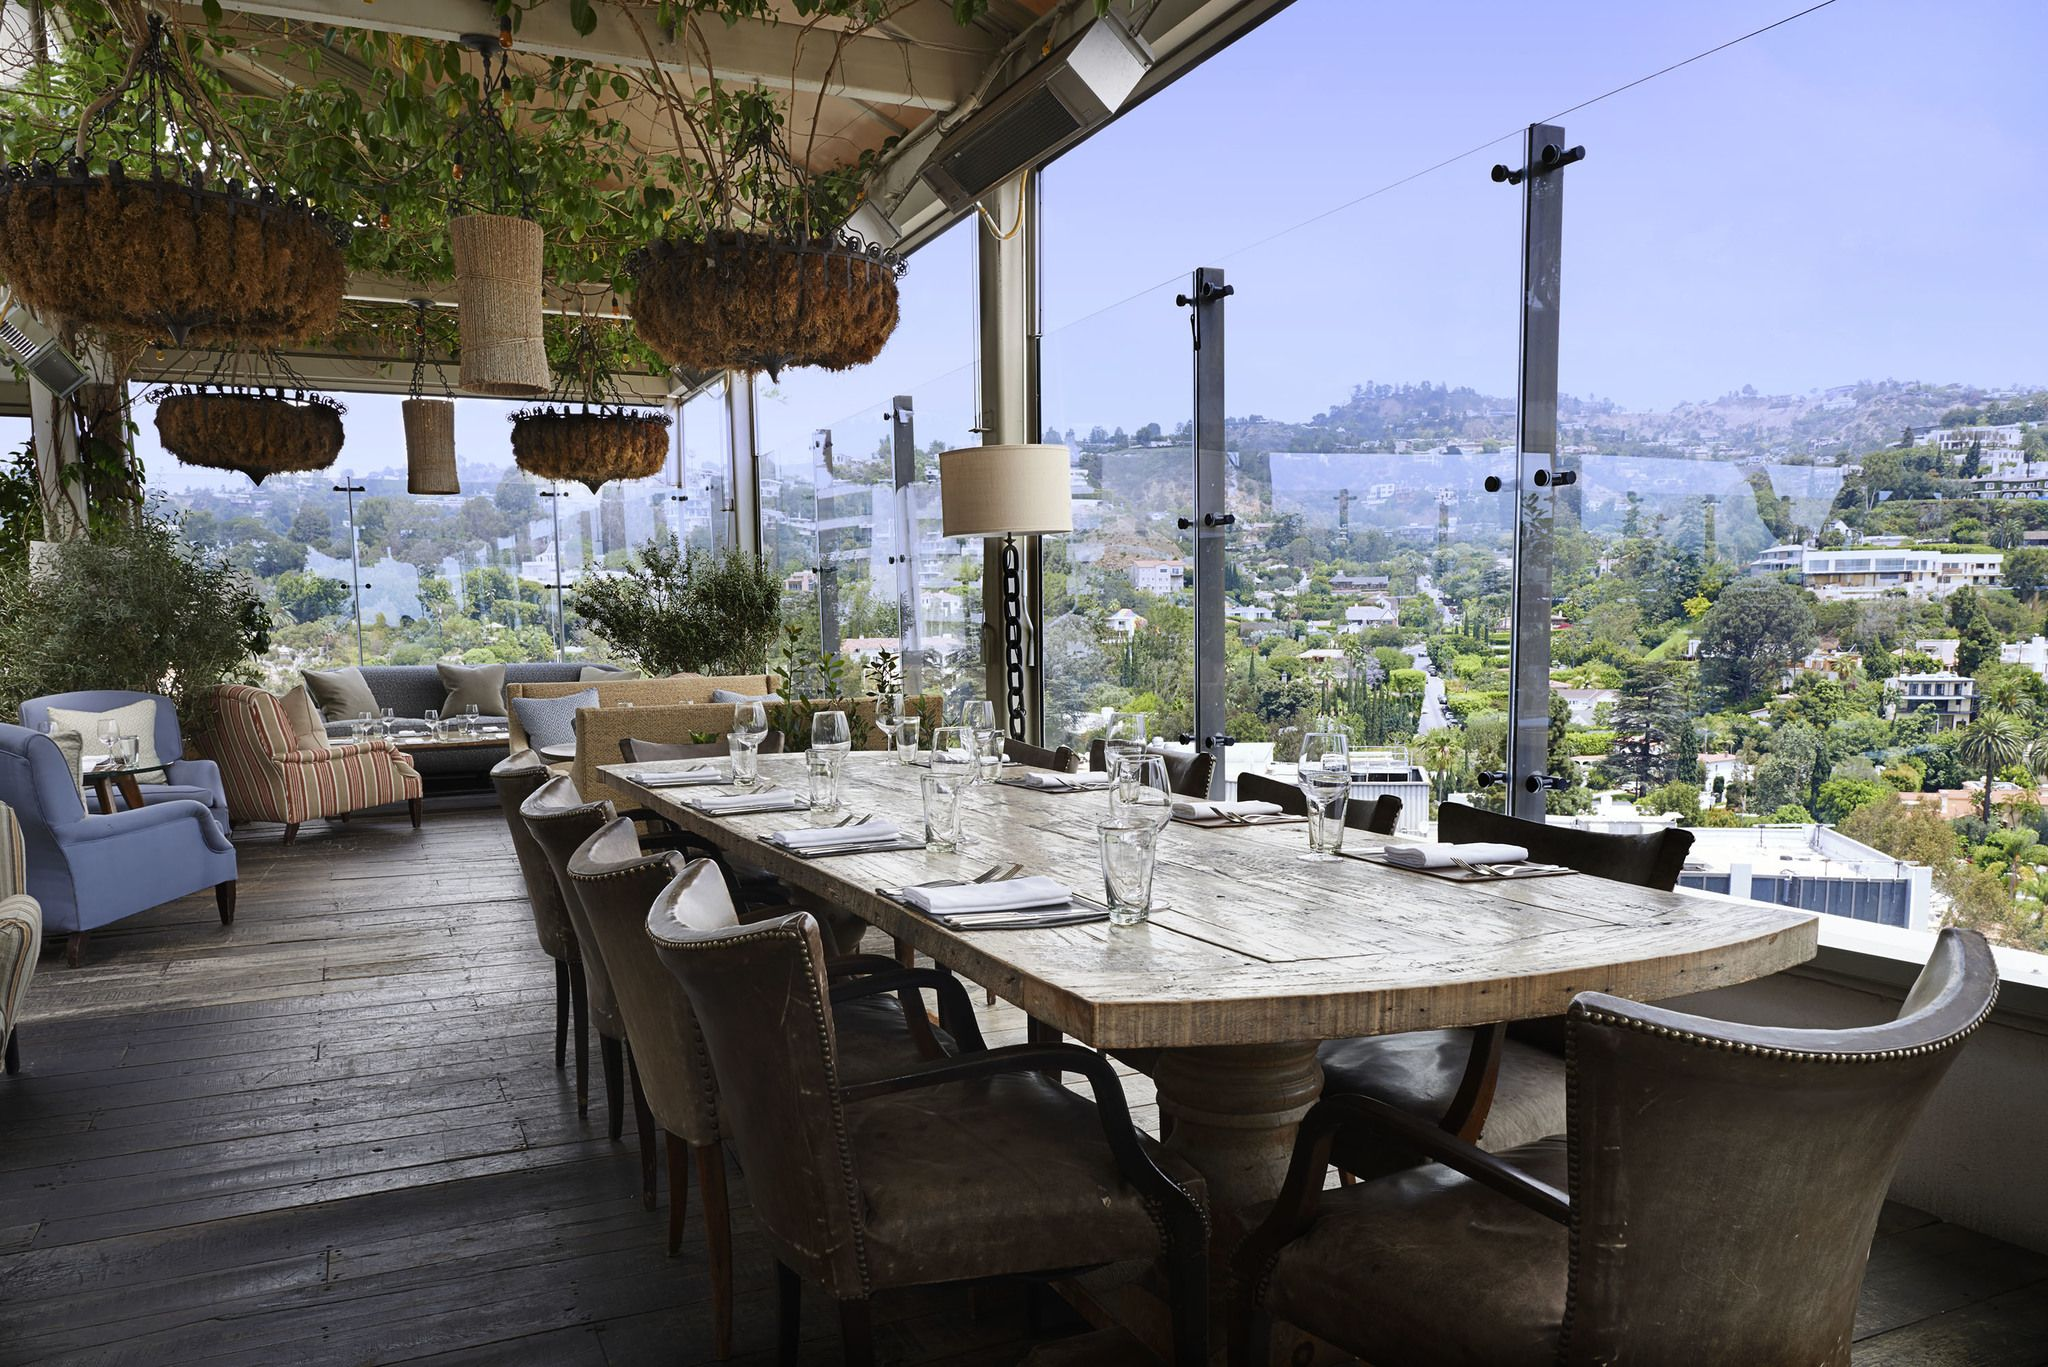 Soho House West Hollywood. To eat and drink with great views ...